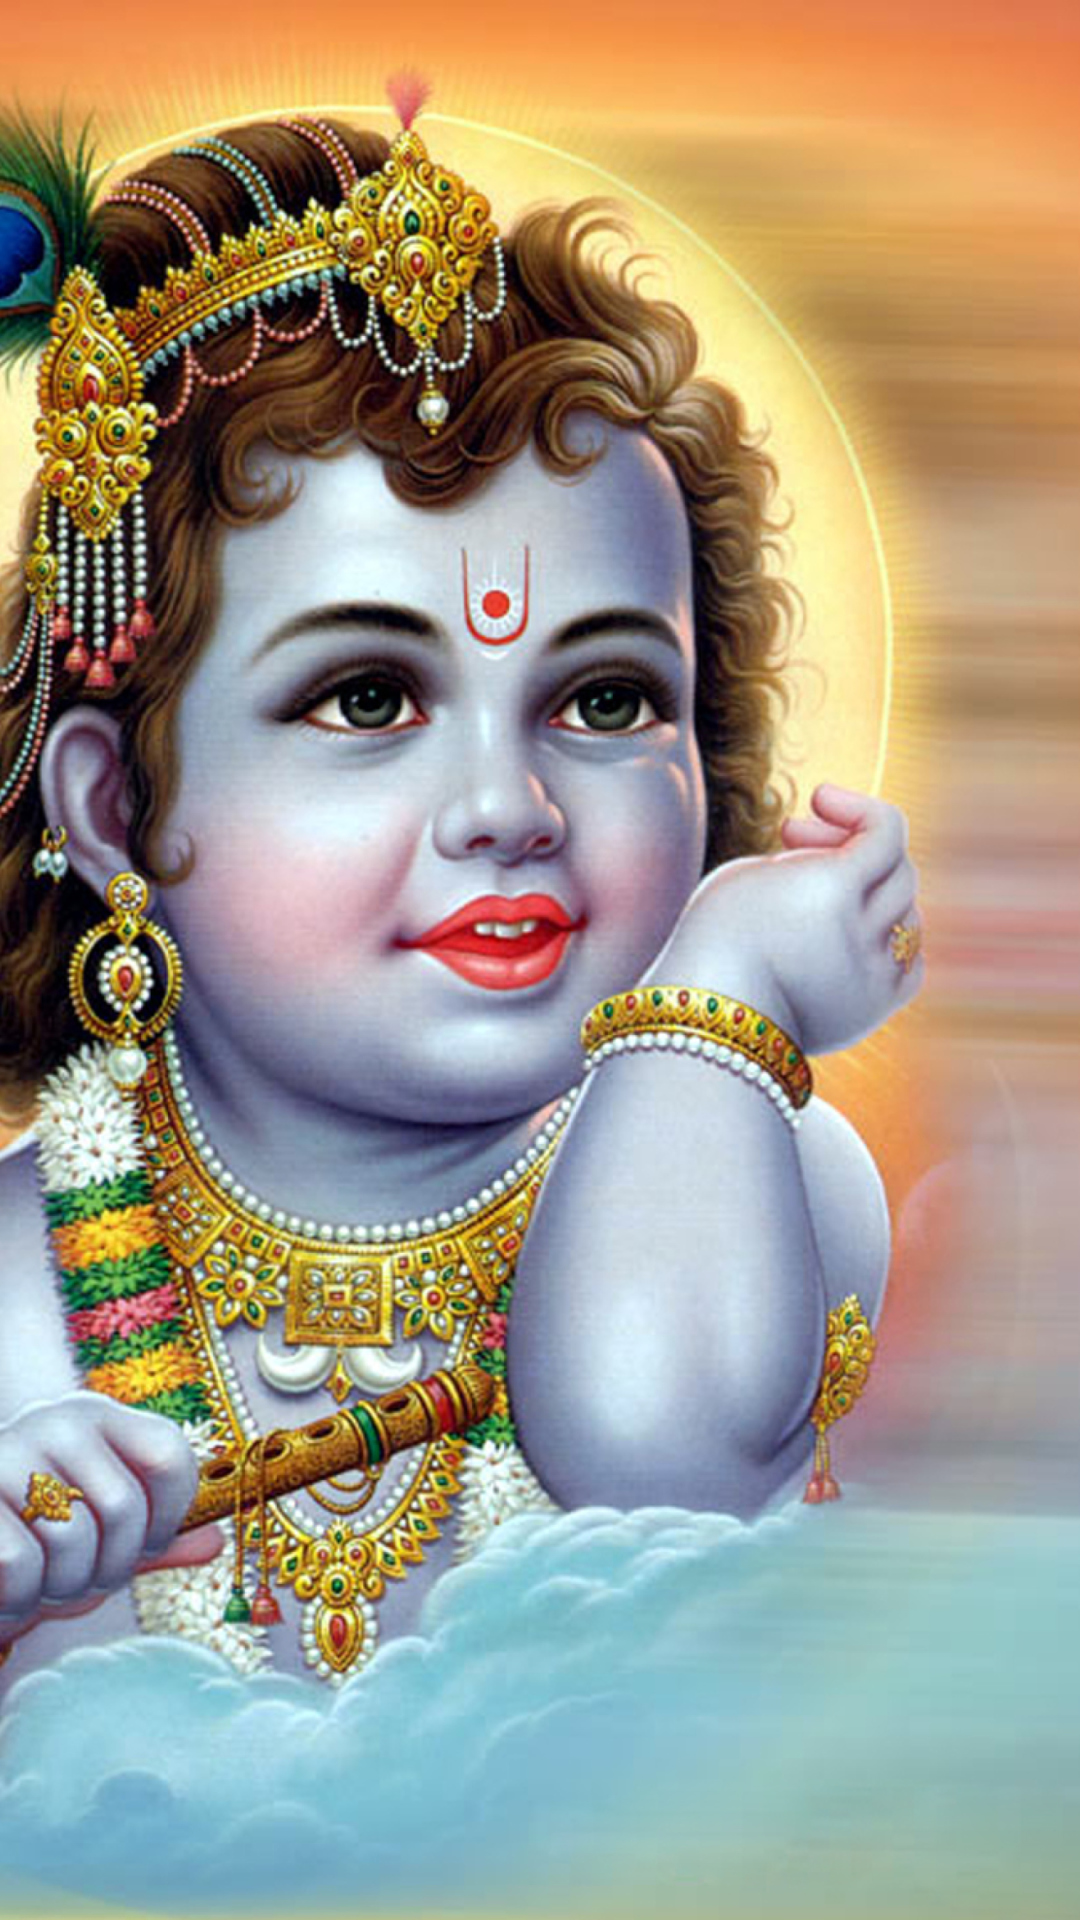 Bal Krishna HD wallpaper for mobile12